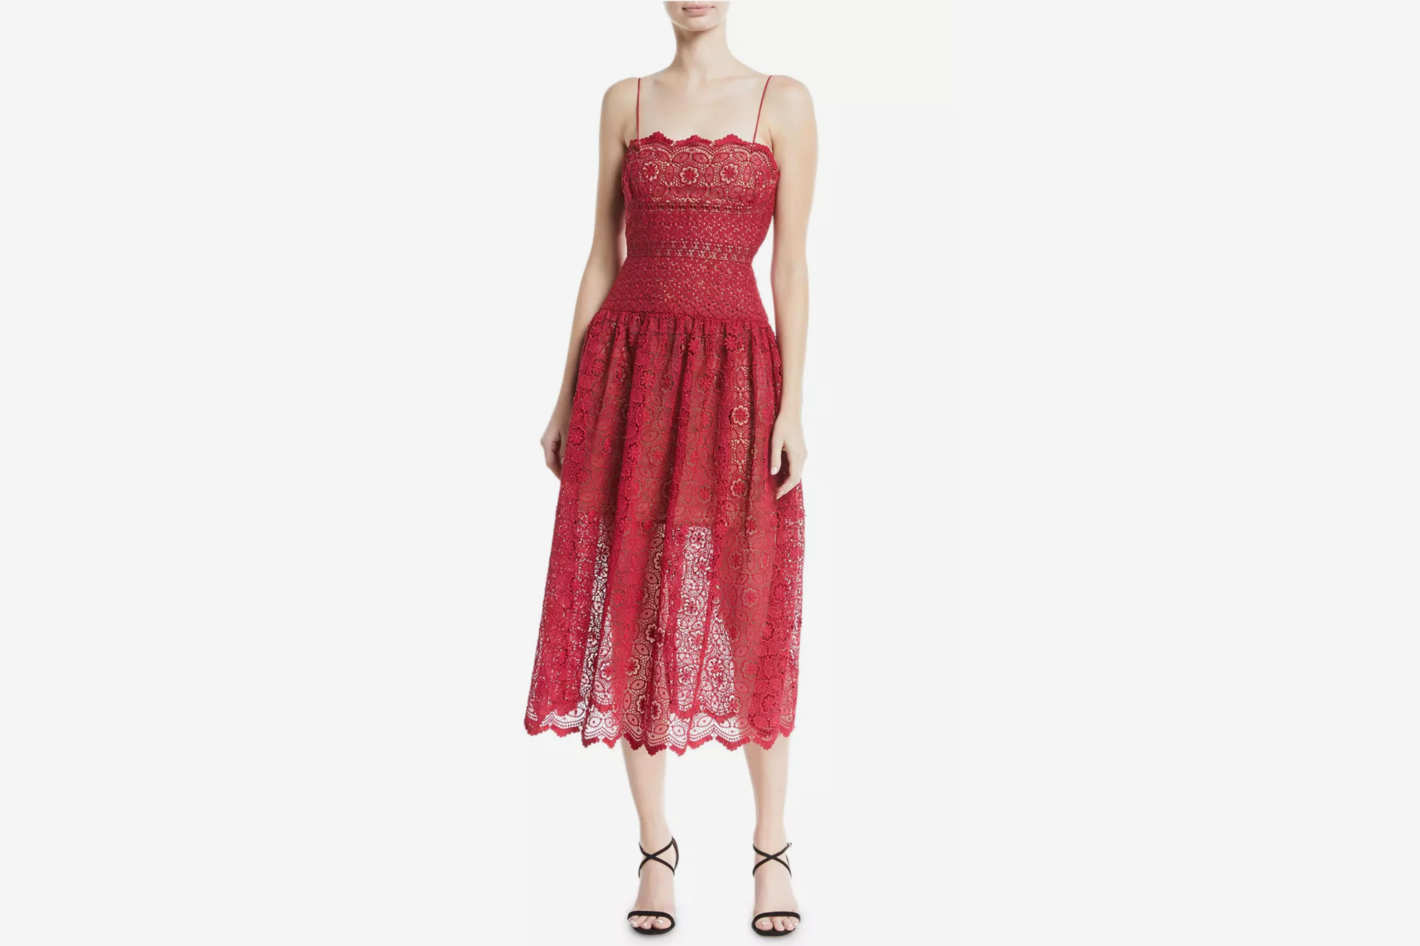 Self-Portrait Sleeveless Floral-Lace Midi Cocktail Dress